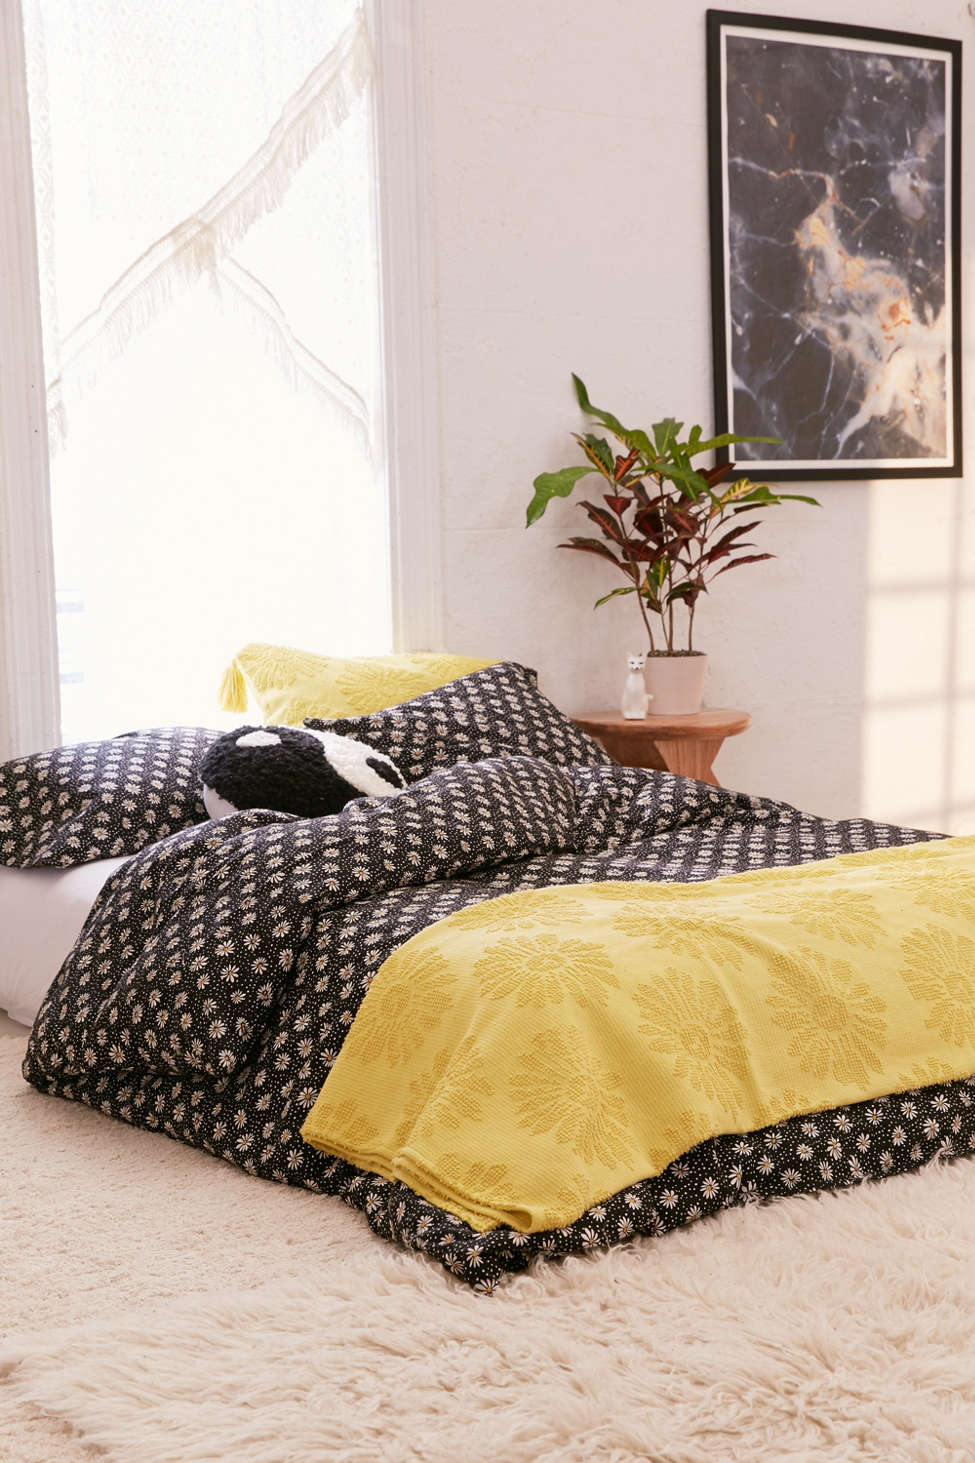 Apartment Bedding For Simple But Stylish Rooms Perfect